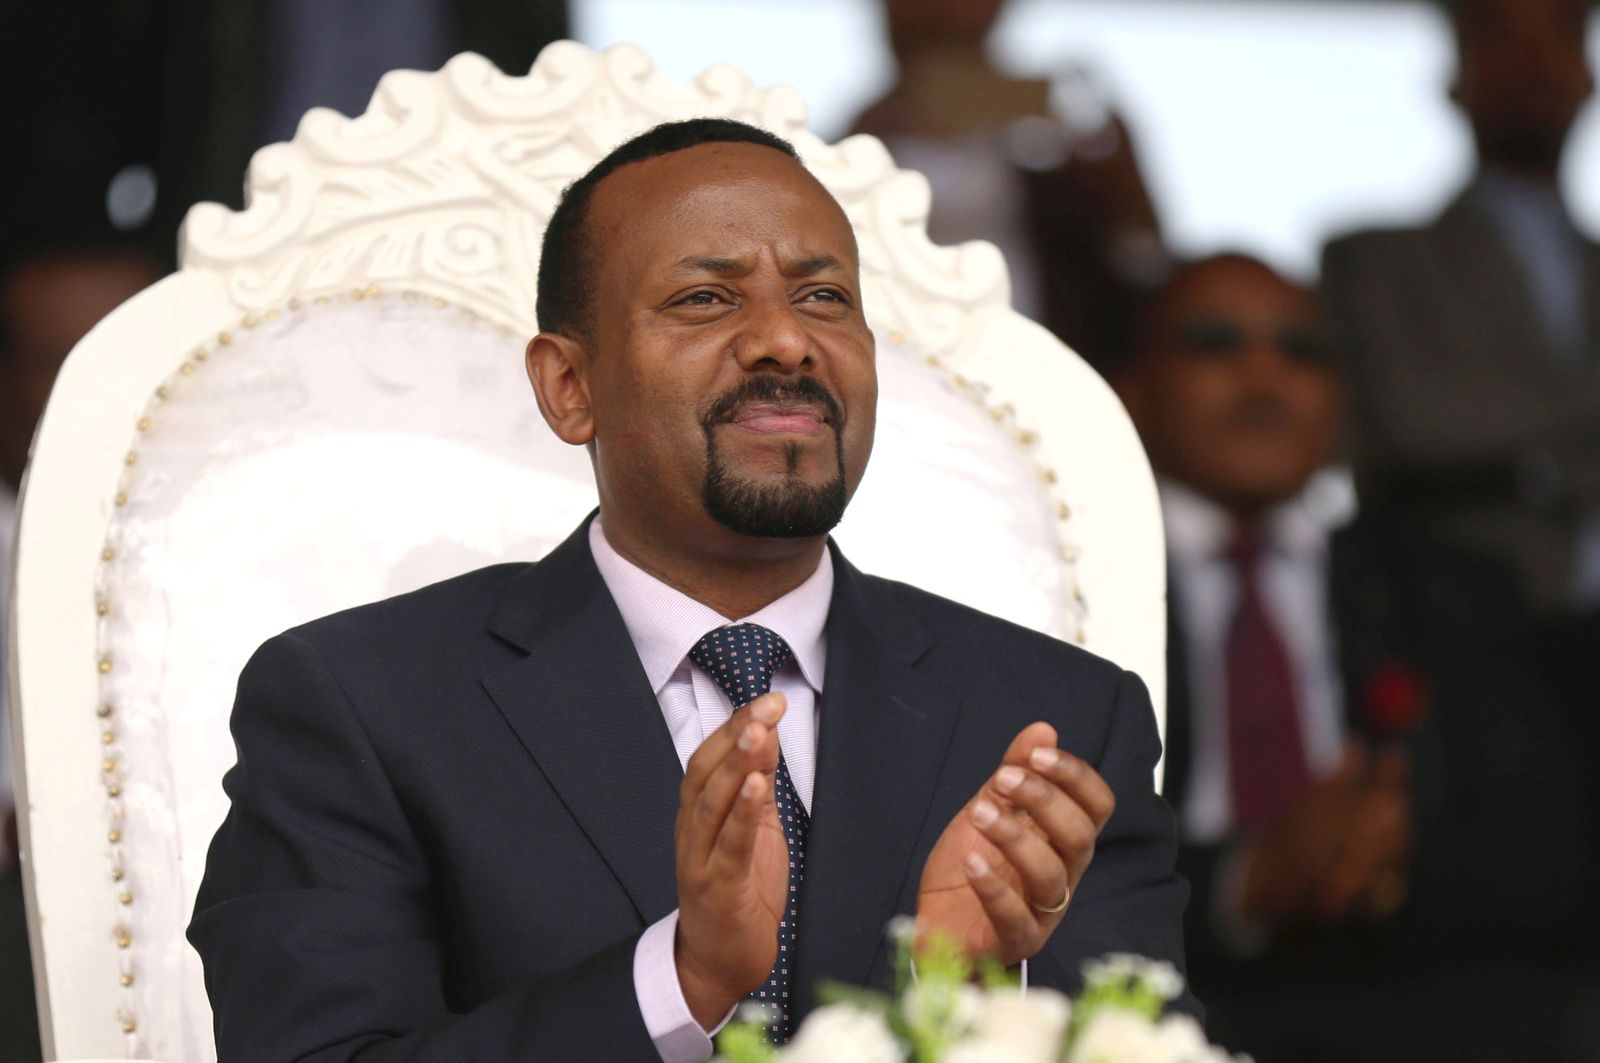 FILE PHOTO: Ethiopia's new prime minister Abiy Ahmed attends a rally during his visit to Ambo in the Oromiya region